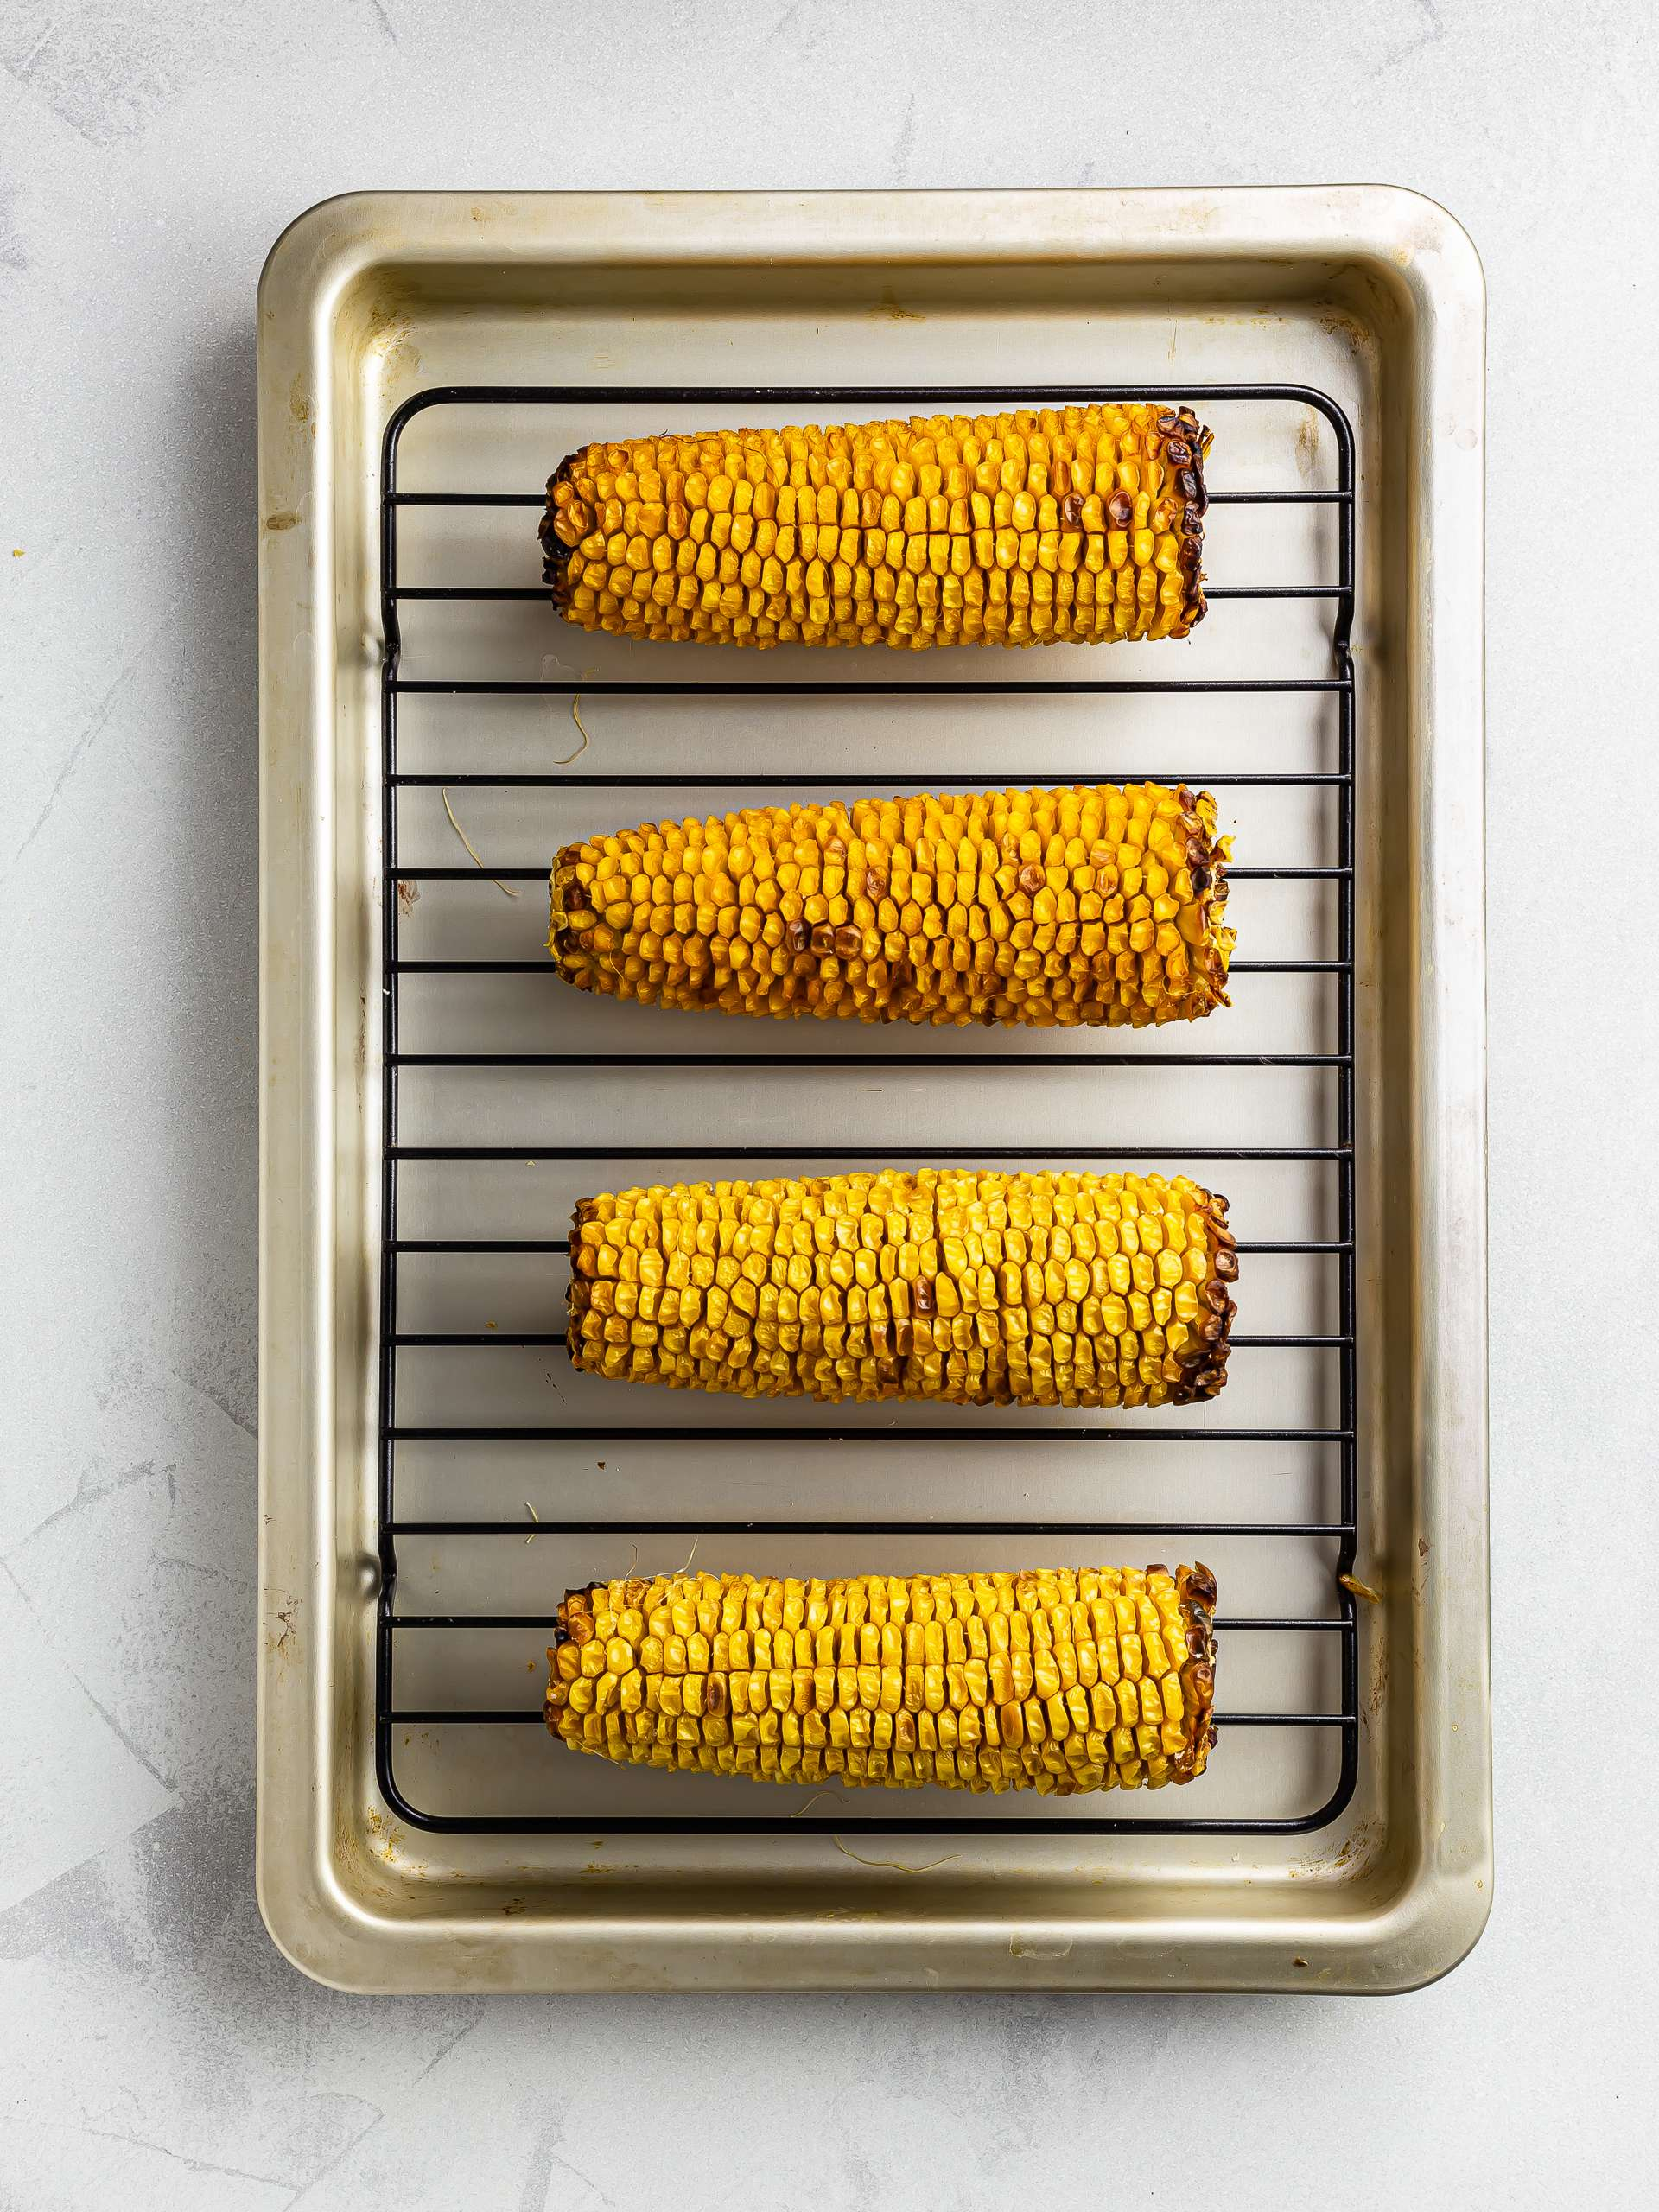 corn the cob grilled in the oven